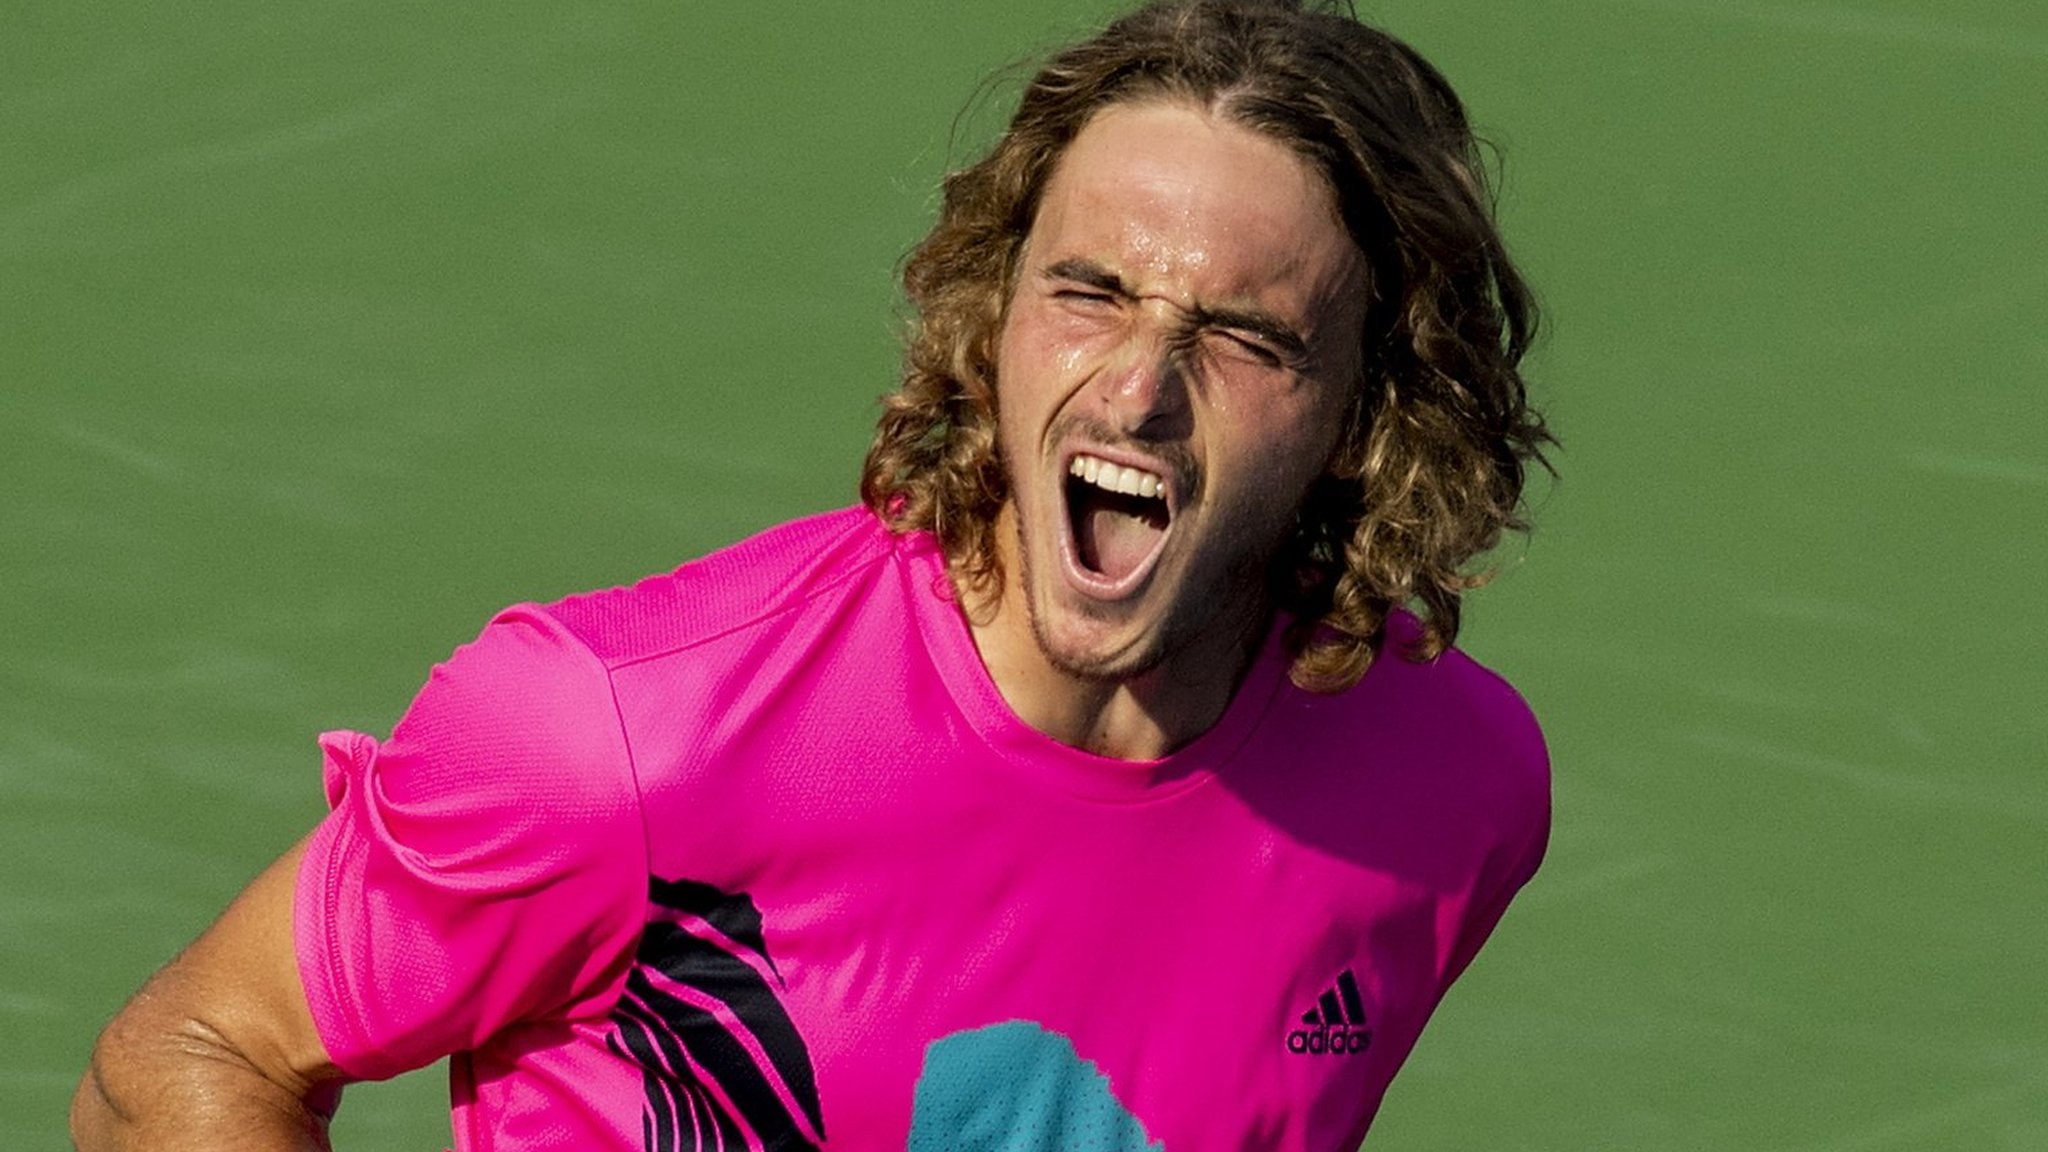 Unseeded Tsitsipas sets up Nadal final on his 20th birthday